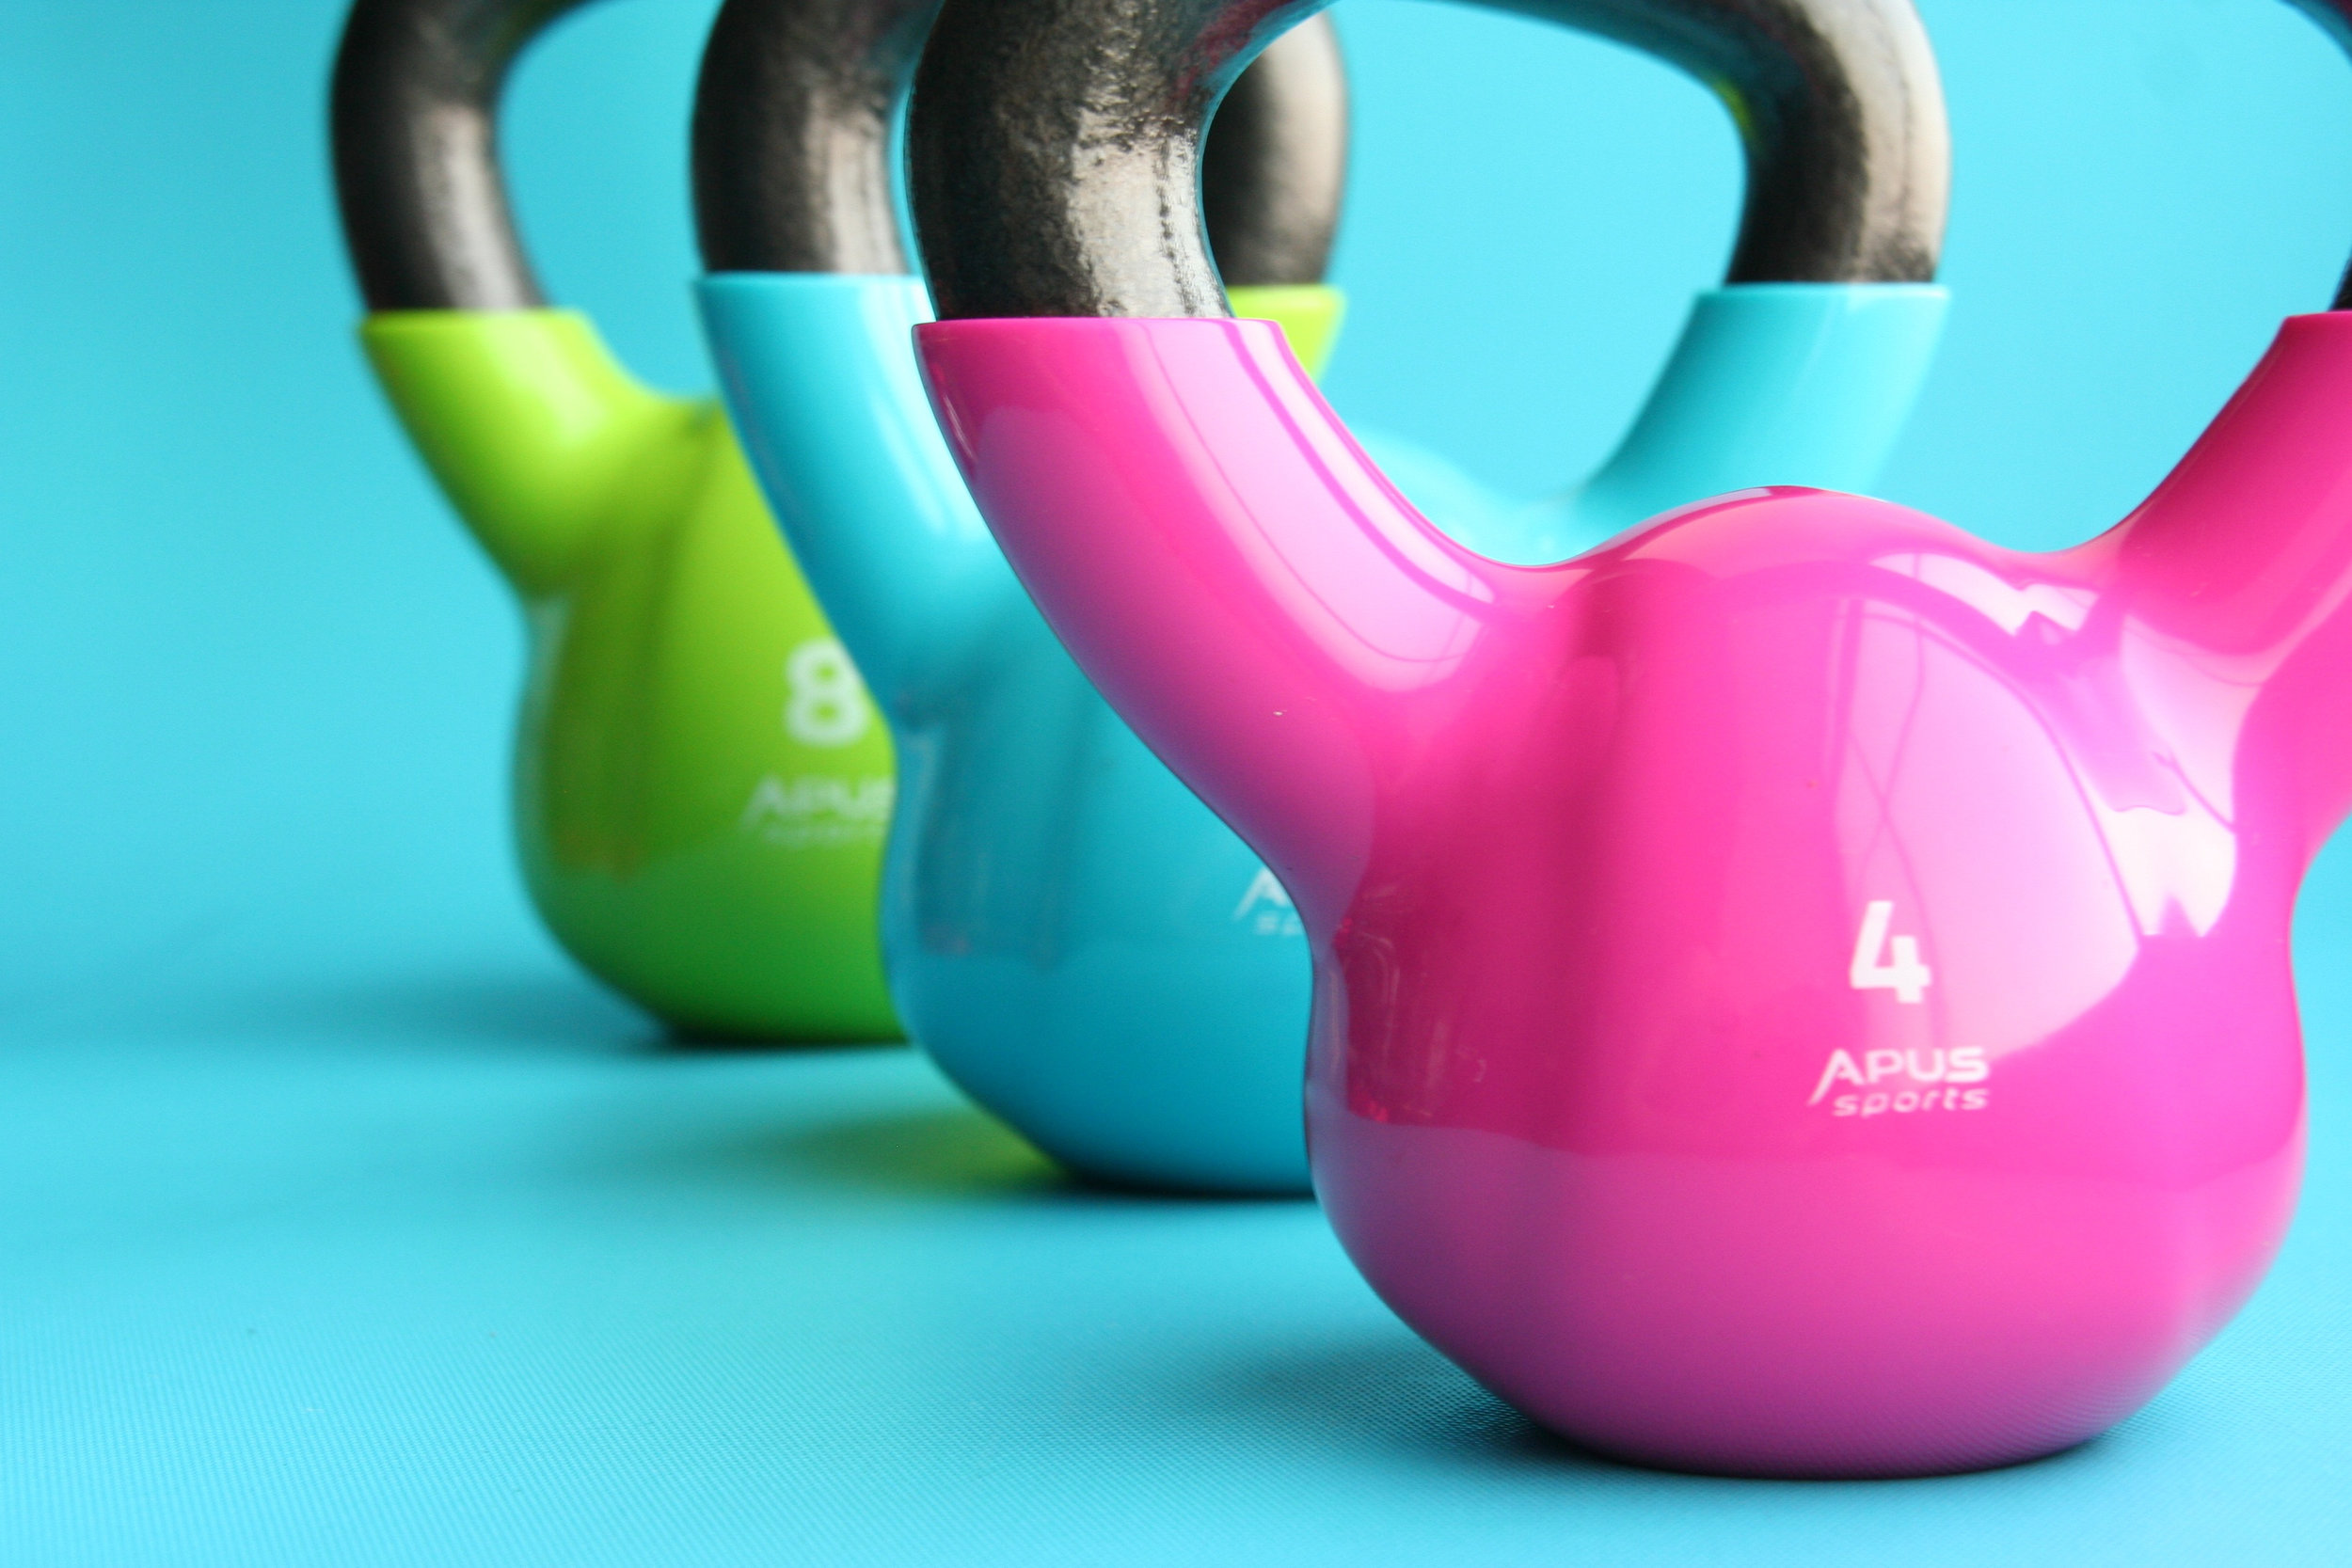 Canva - Green, Blue, and Pink Kettle Bells on Blue Surface.jpg